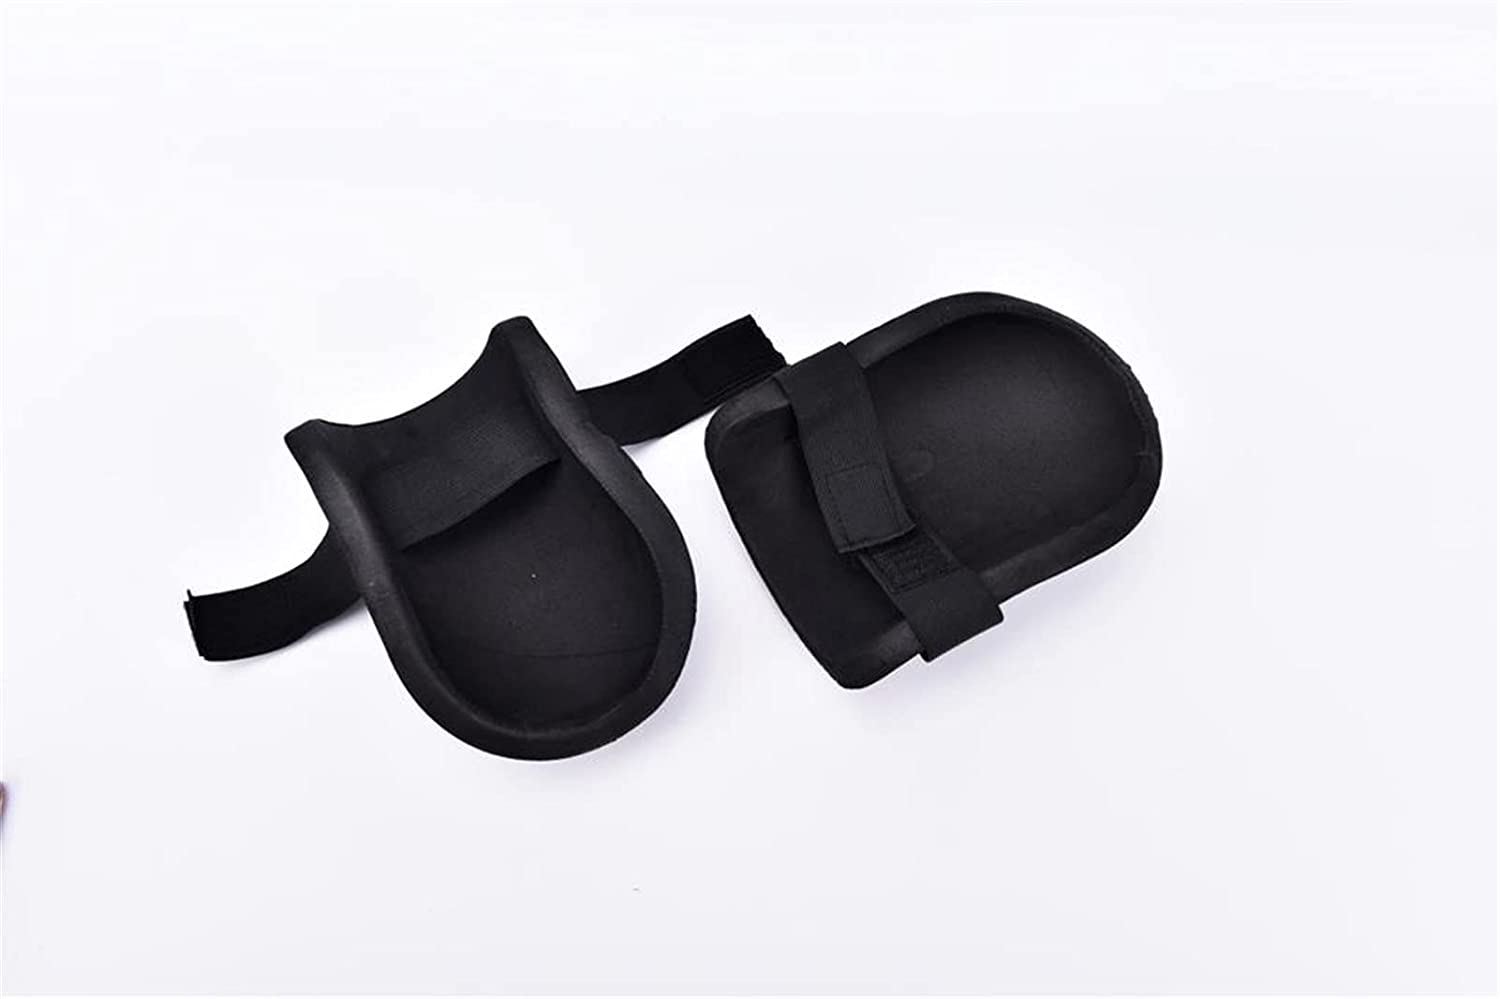 LLUA 3Pair Sales for sale Soft Foam Knee Sports Protective Pads Cushioning Work Save money